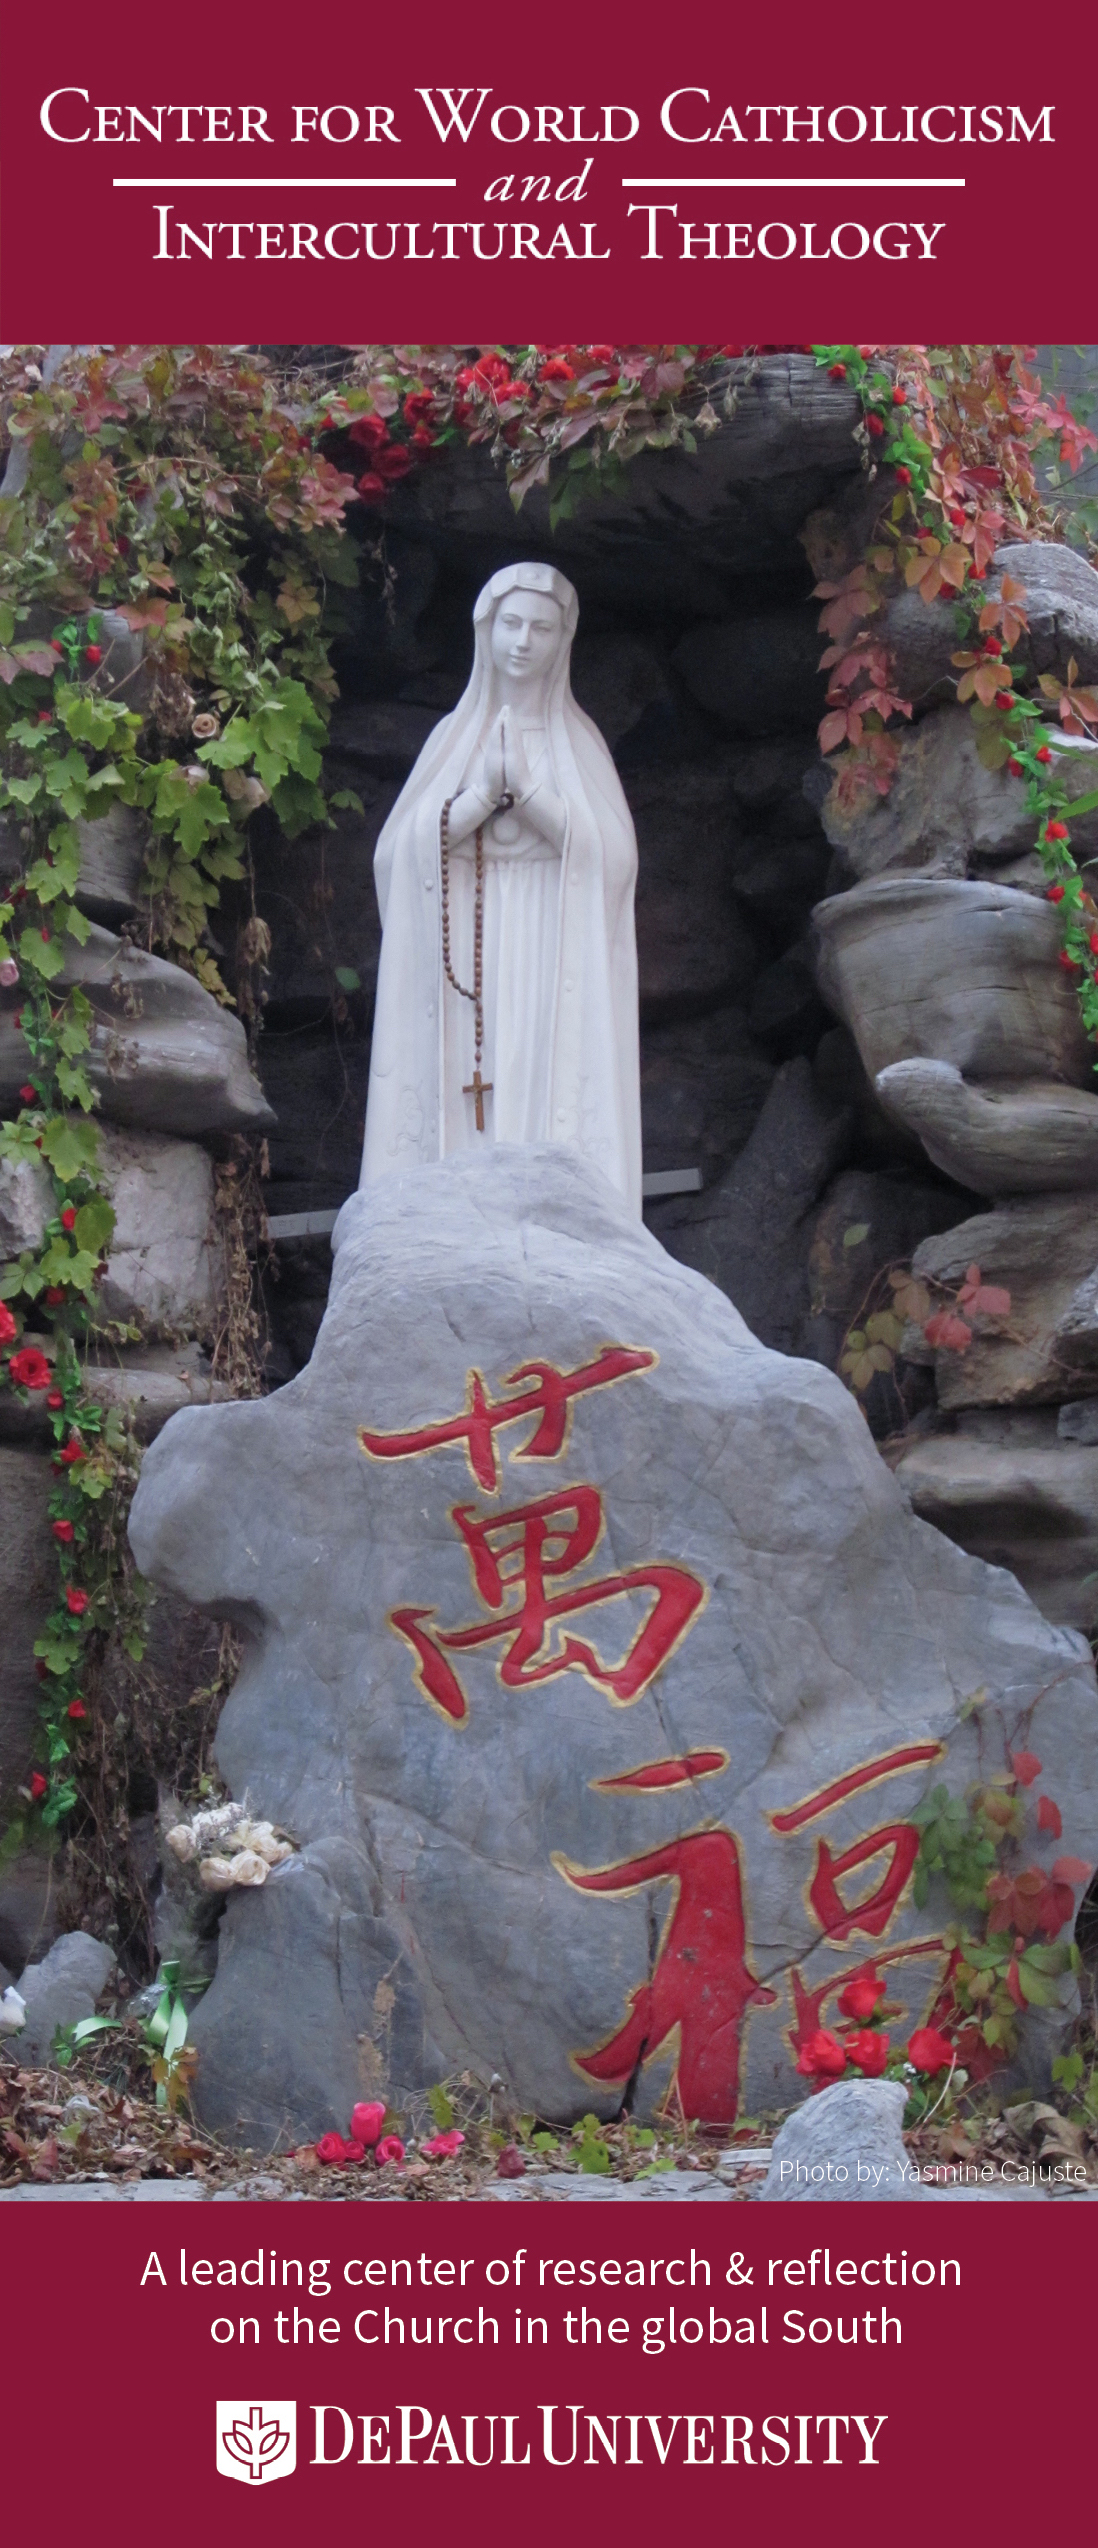 Cover of CWCIT brochure showing a statue of Mary in China